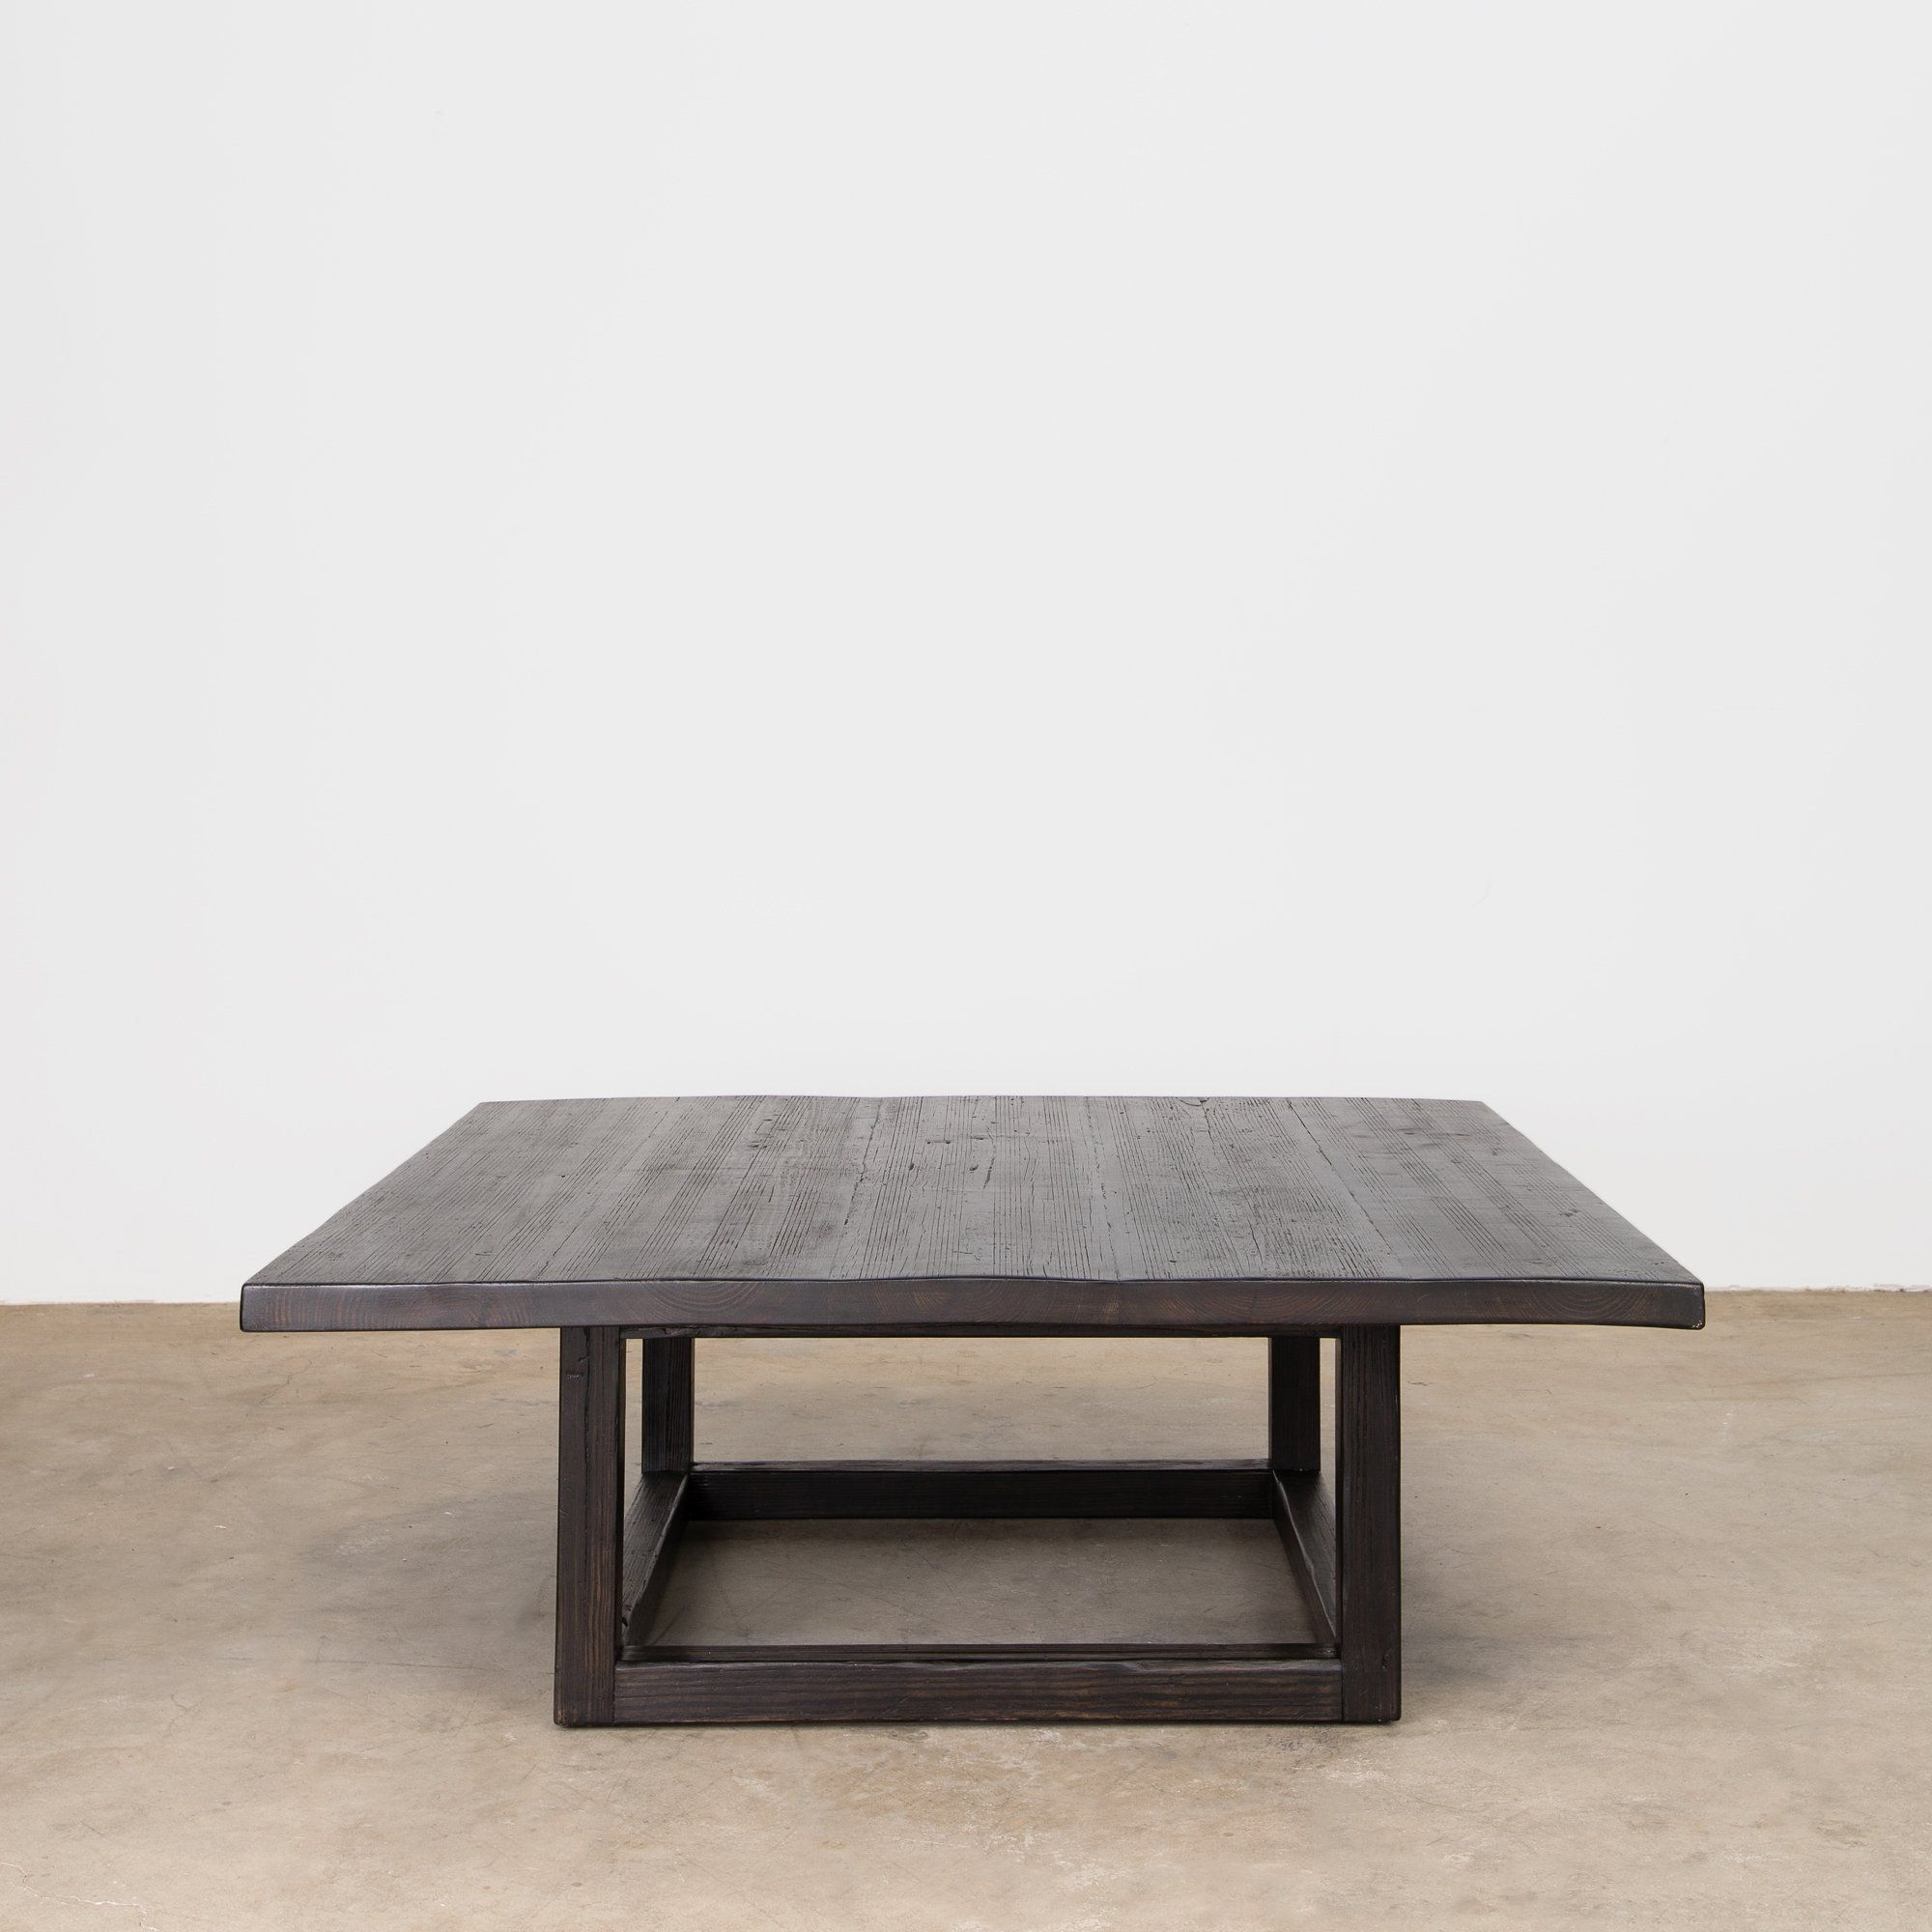 Woodlake Coffee Table in 2020 Table, Amber interiors